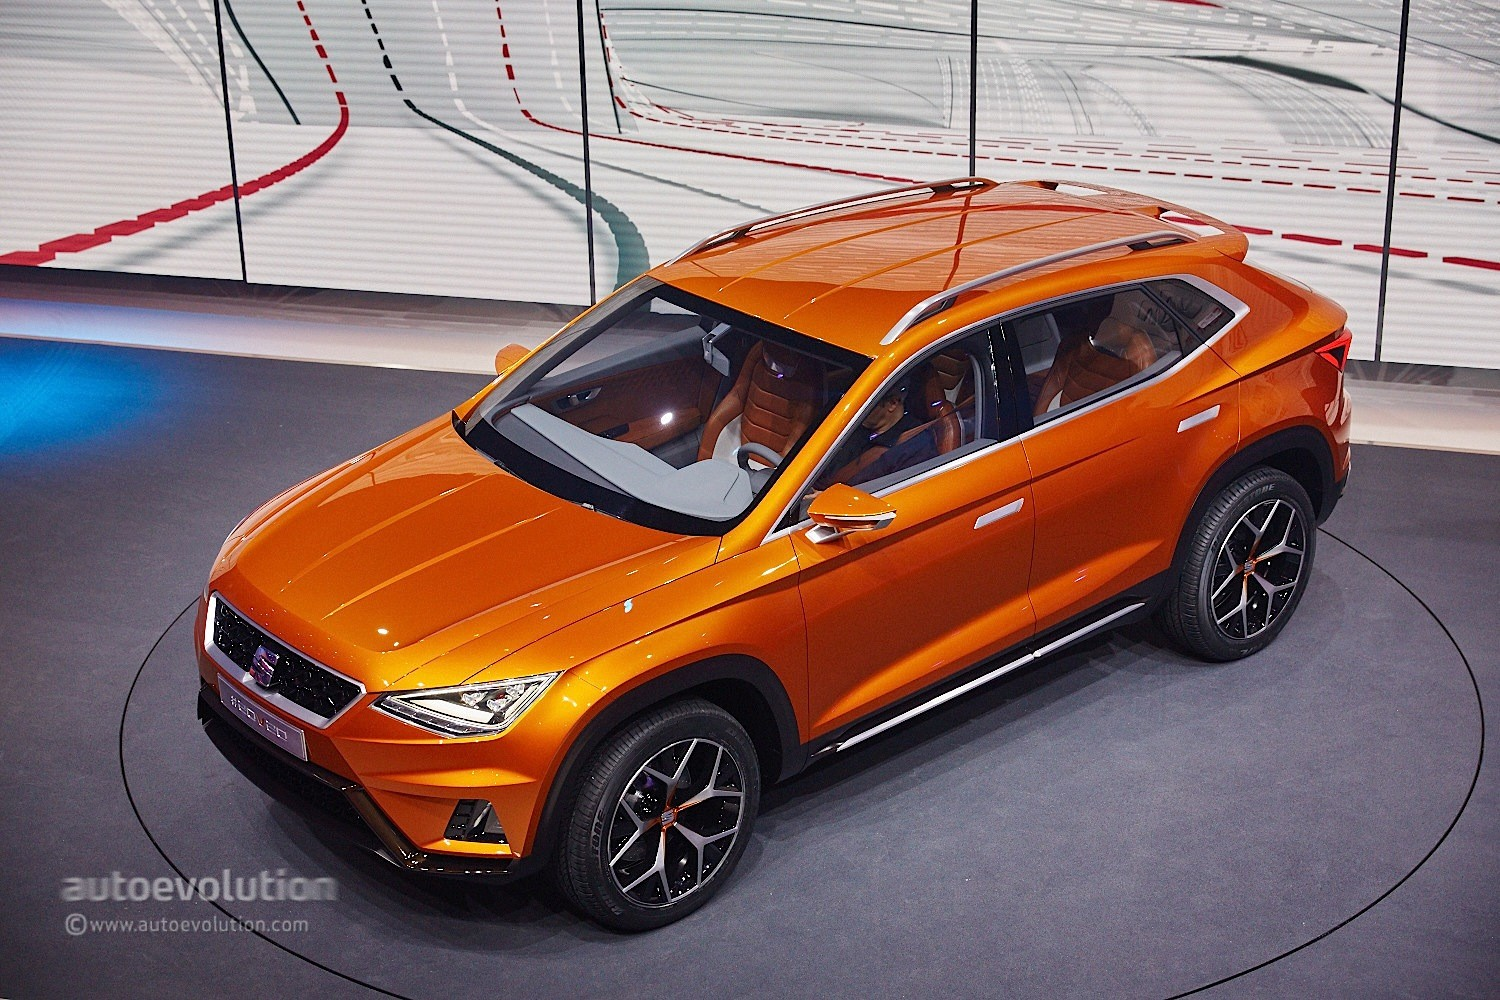 seat-prostyle-suv-will-be-the-first-of-4-new-models-coming-until-2017_1